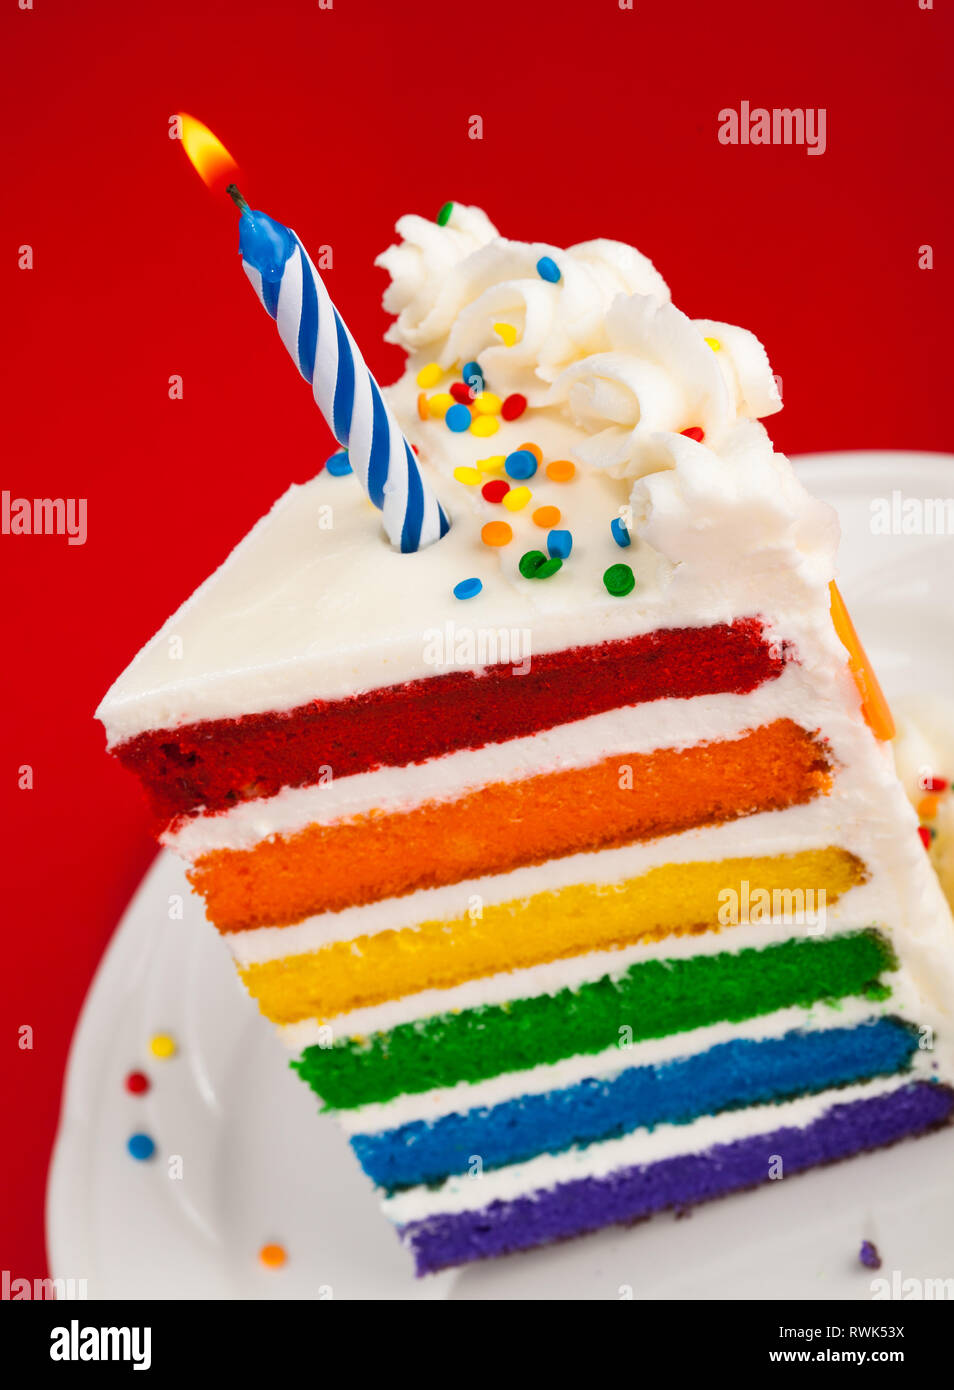 Rainbow Layer Birthday Cake Slice With Candle On A Red Background